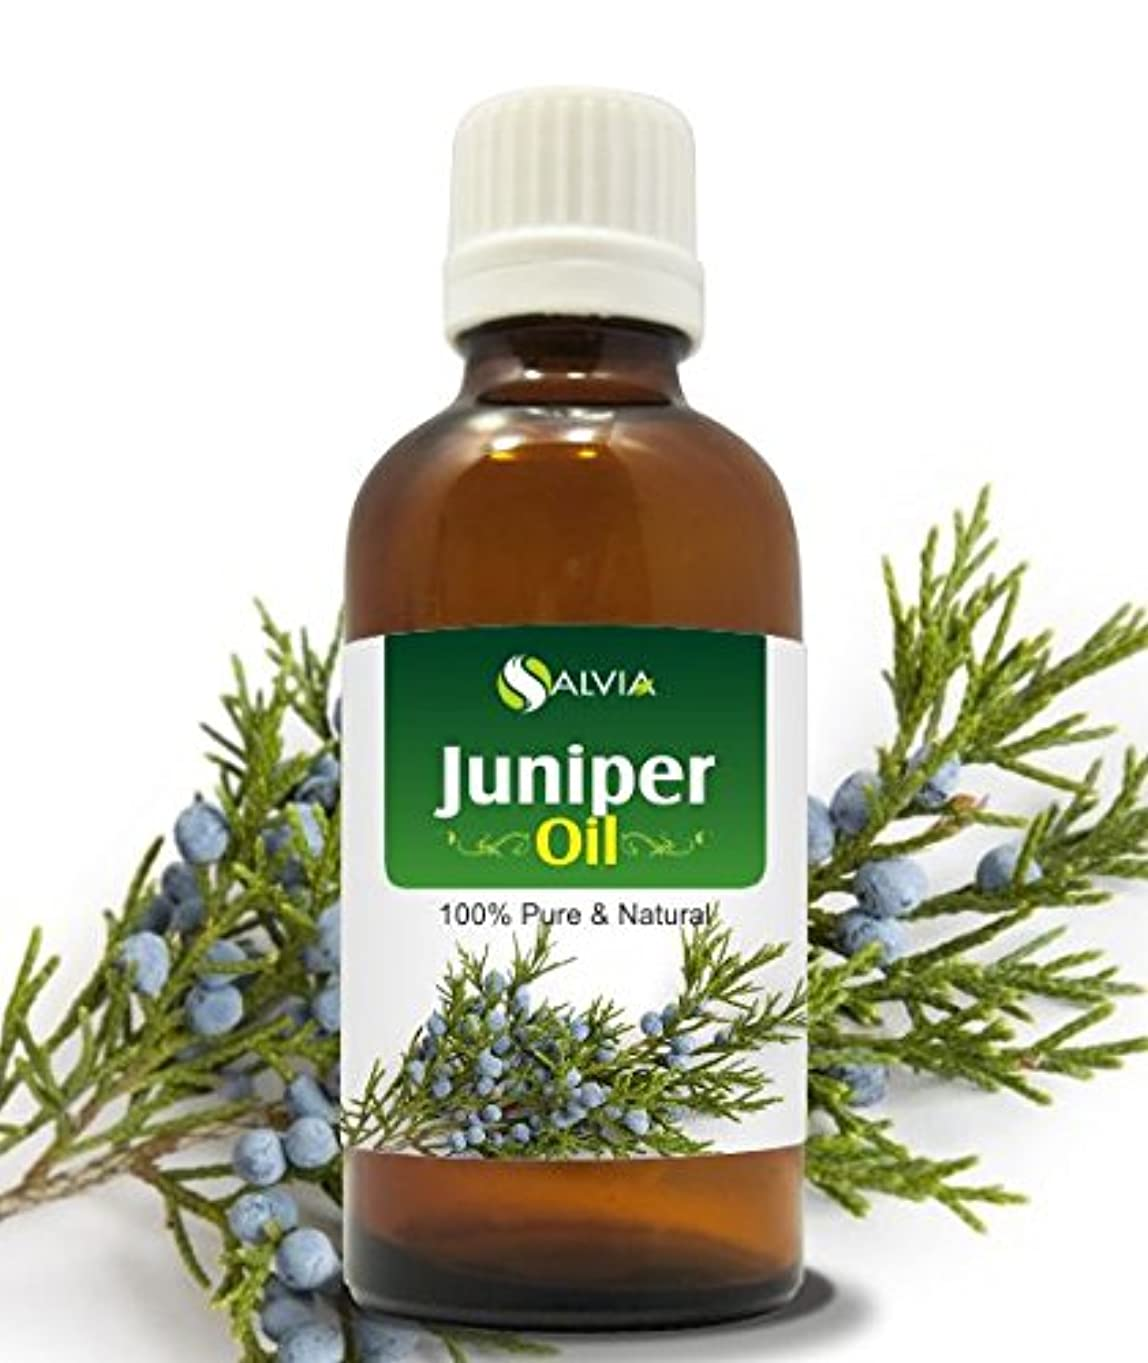 管理ラリーアセンブリJuniper Oil 100% Natural Pure Undiluted Uncut Essential Oil 100ml